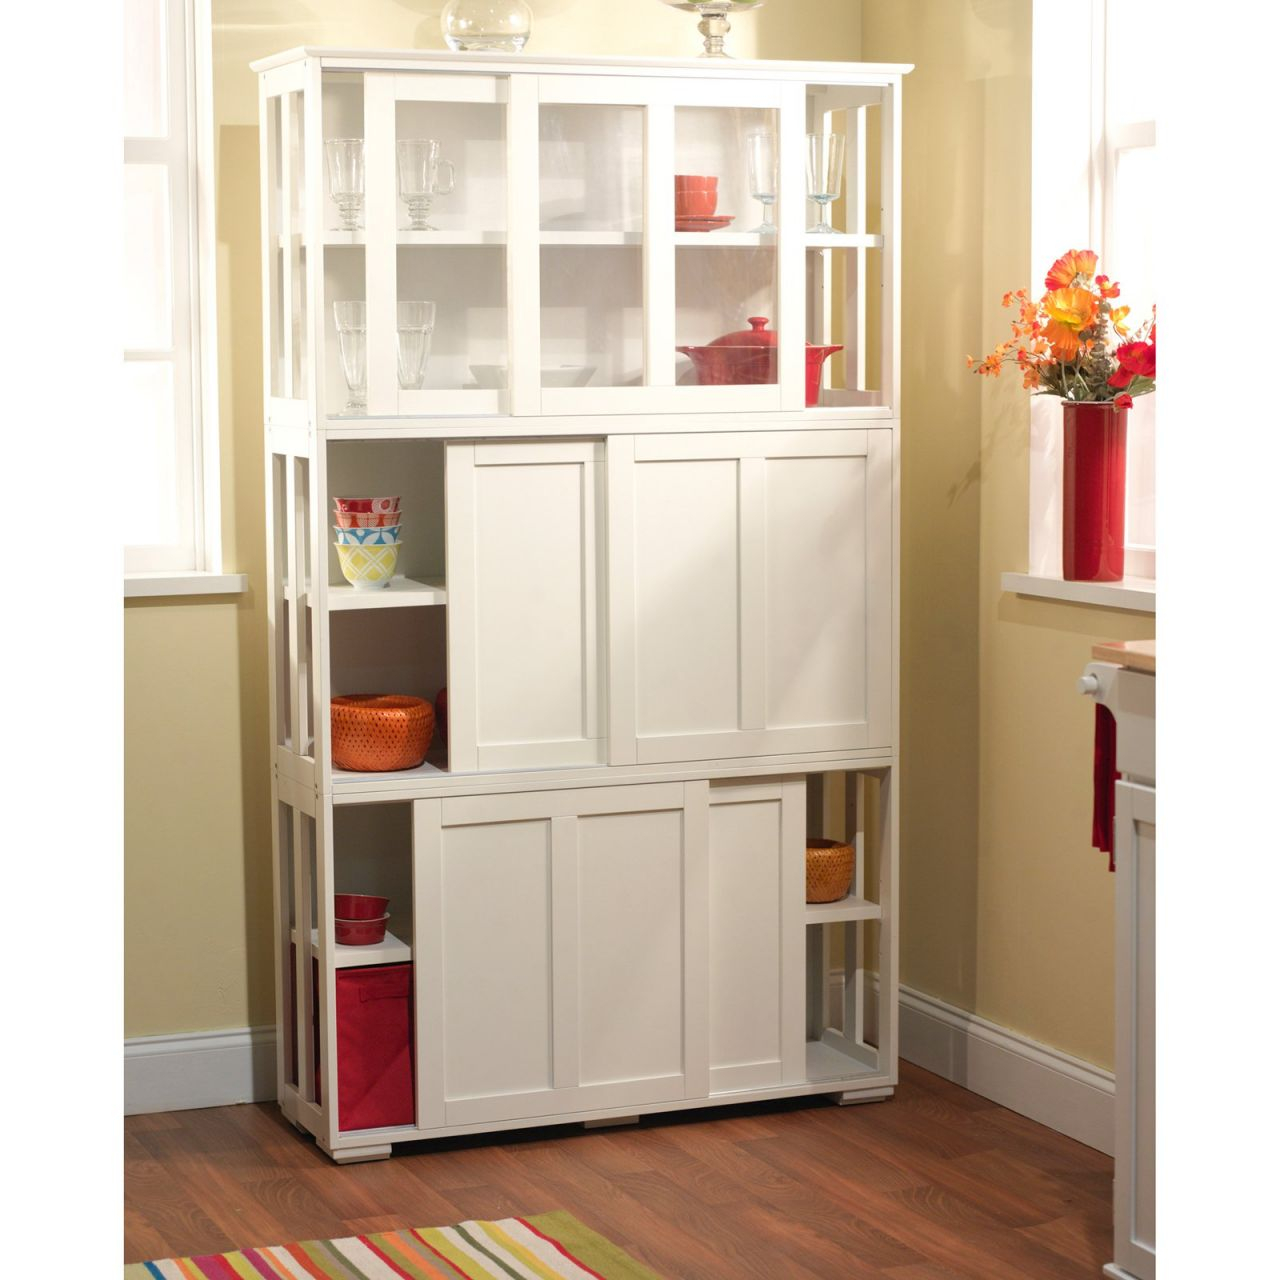 60 Most Exemplary Wood Storage Cabinet With Doors Pantry Shelf Unit throughout Living Room Storage Cabinet With Doors